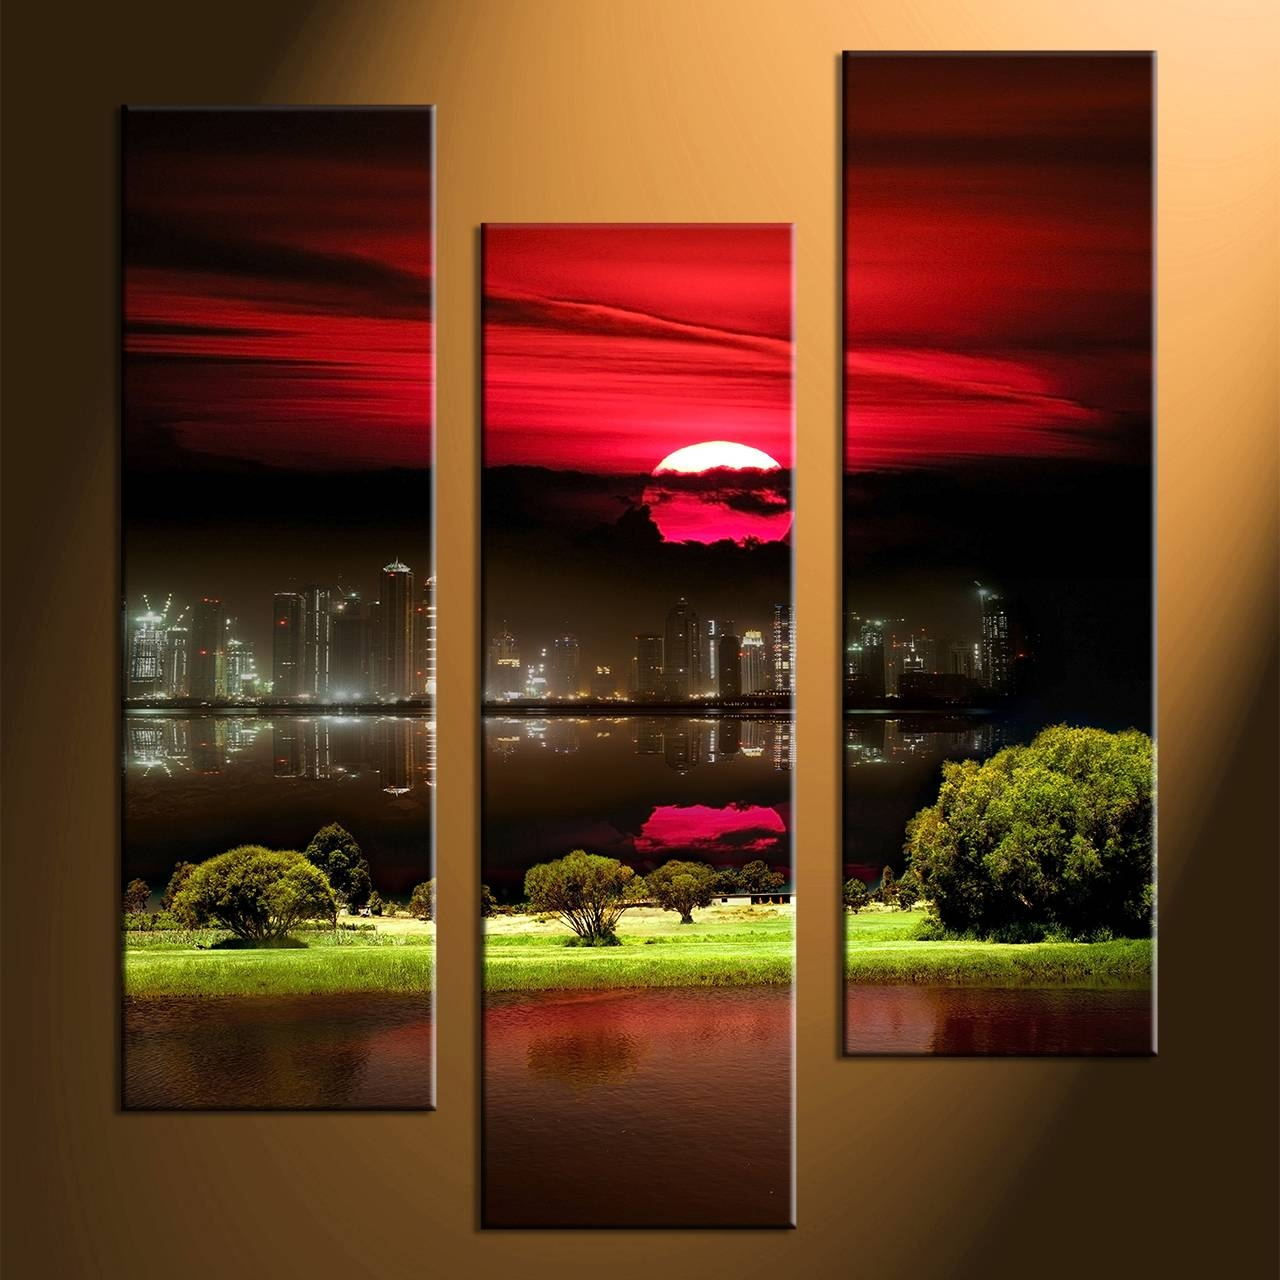 Beautiful Landscape Metal Wall Art Bedroom Decor Piece Wall With Regard To 2018 Kohl's Metal Wall Art (View 6 of 30)